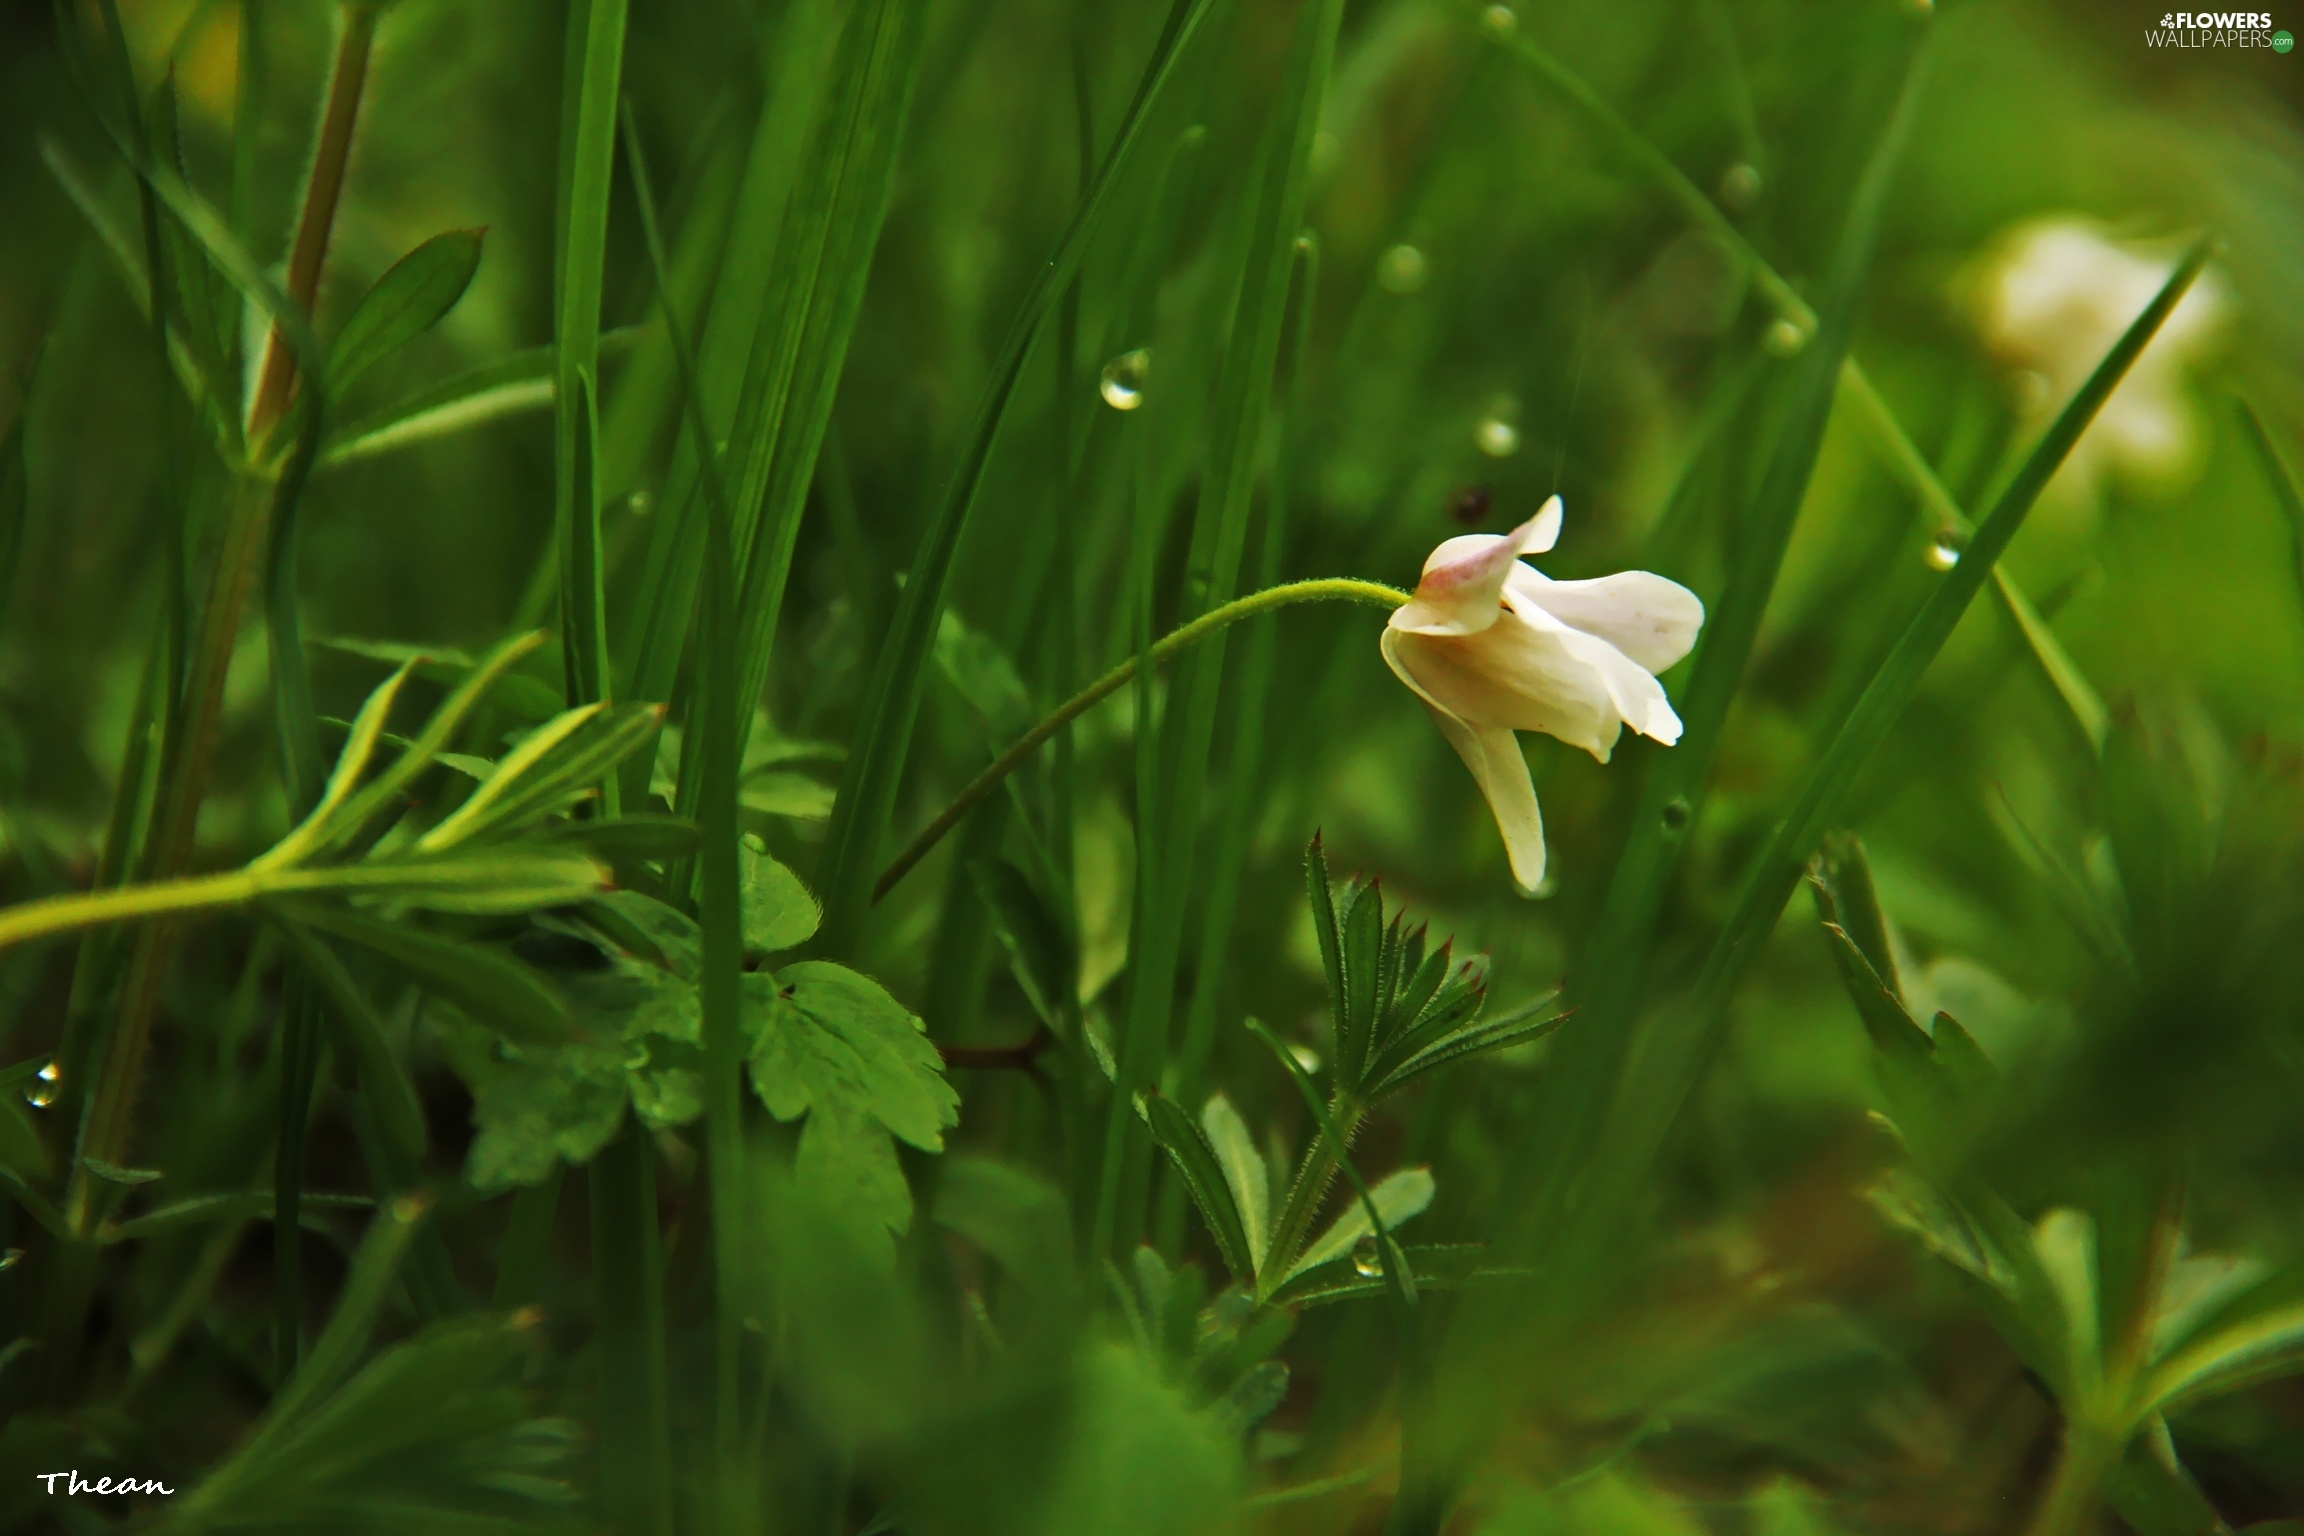 Anemone Colourfull Flowers Grass White Flowers Wallpapers